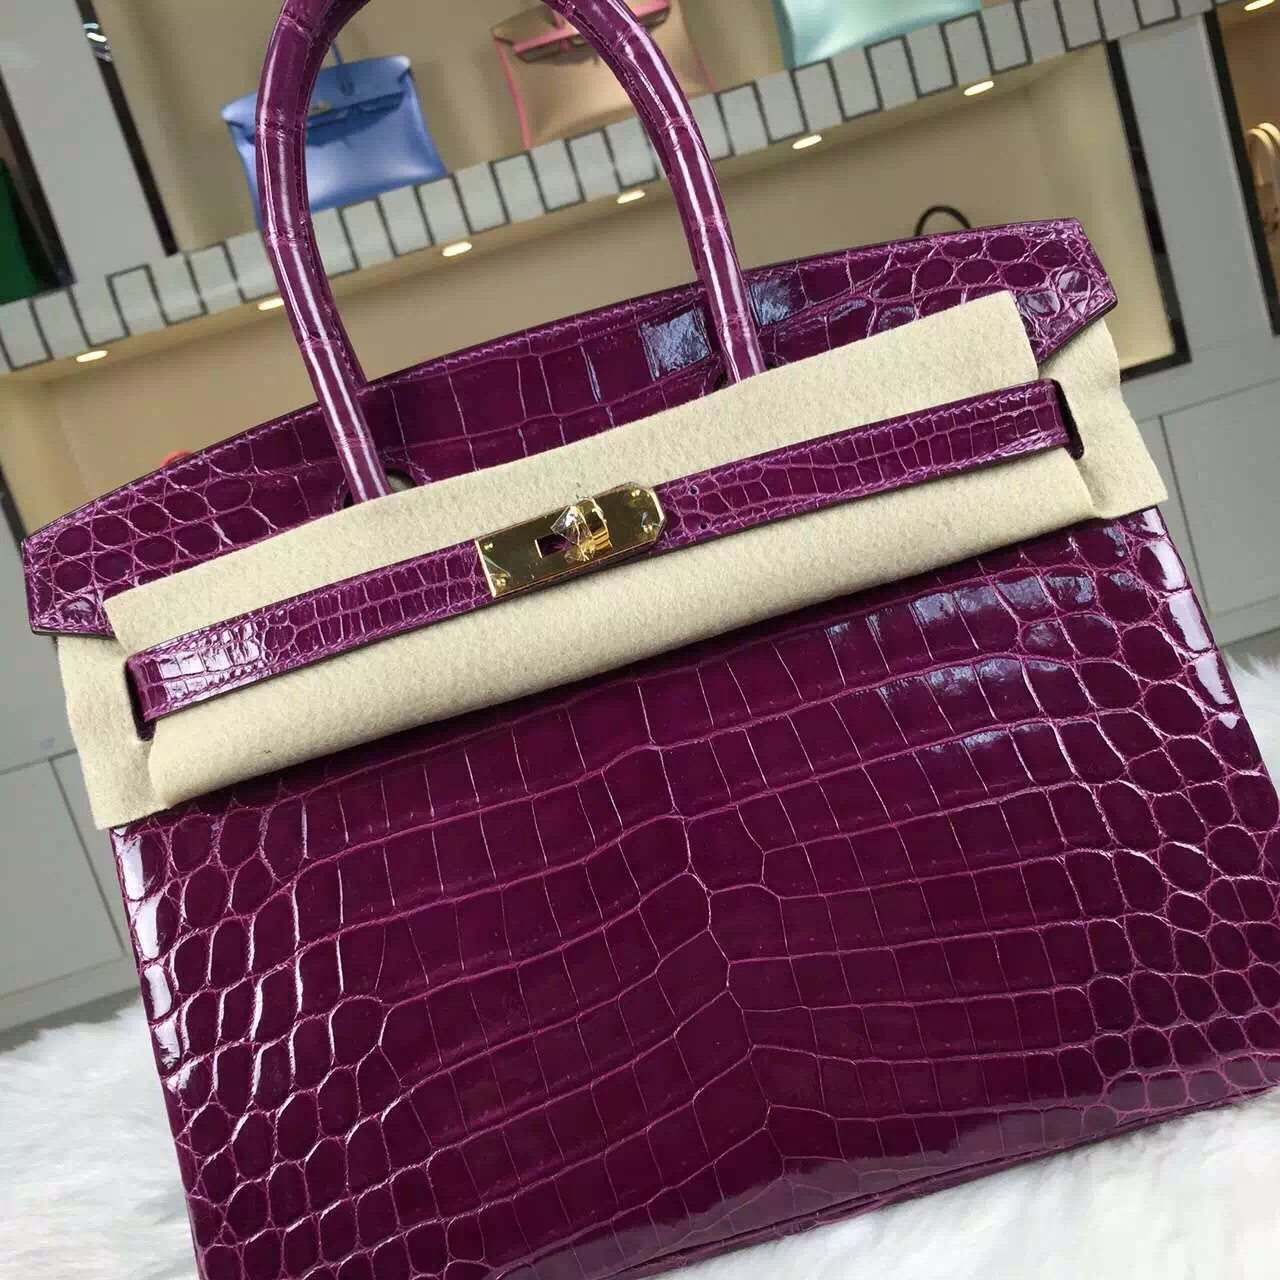 Discount Hermes Birkin Bag 30cm Grape Purple Crocodile Skin Leather Tote Bag